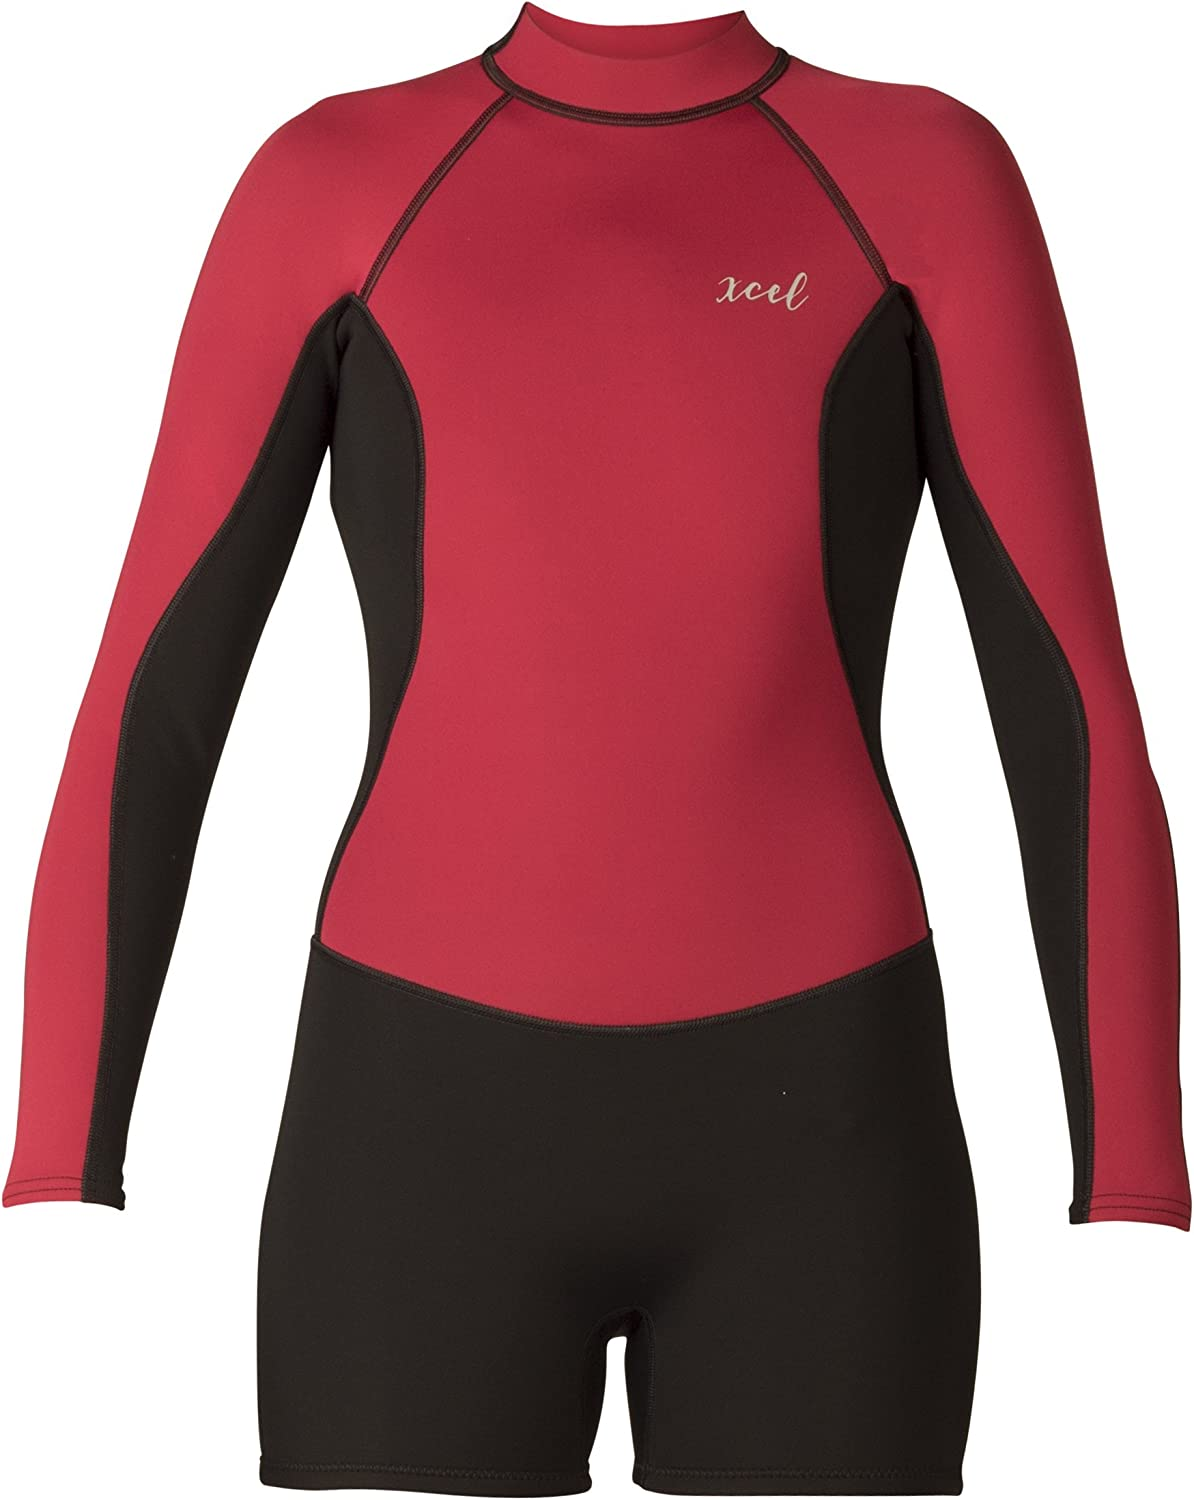 Xcel Women's Axis 2mm Long Sleeve Shorty Spring 2018 Spring Suit, Black Goji Berry, Size 10